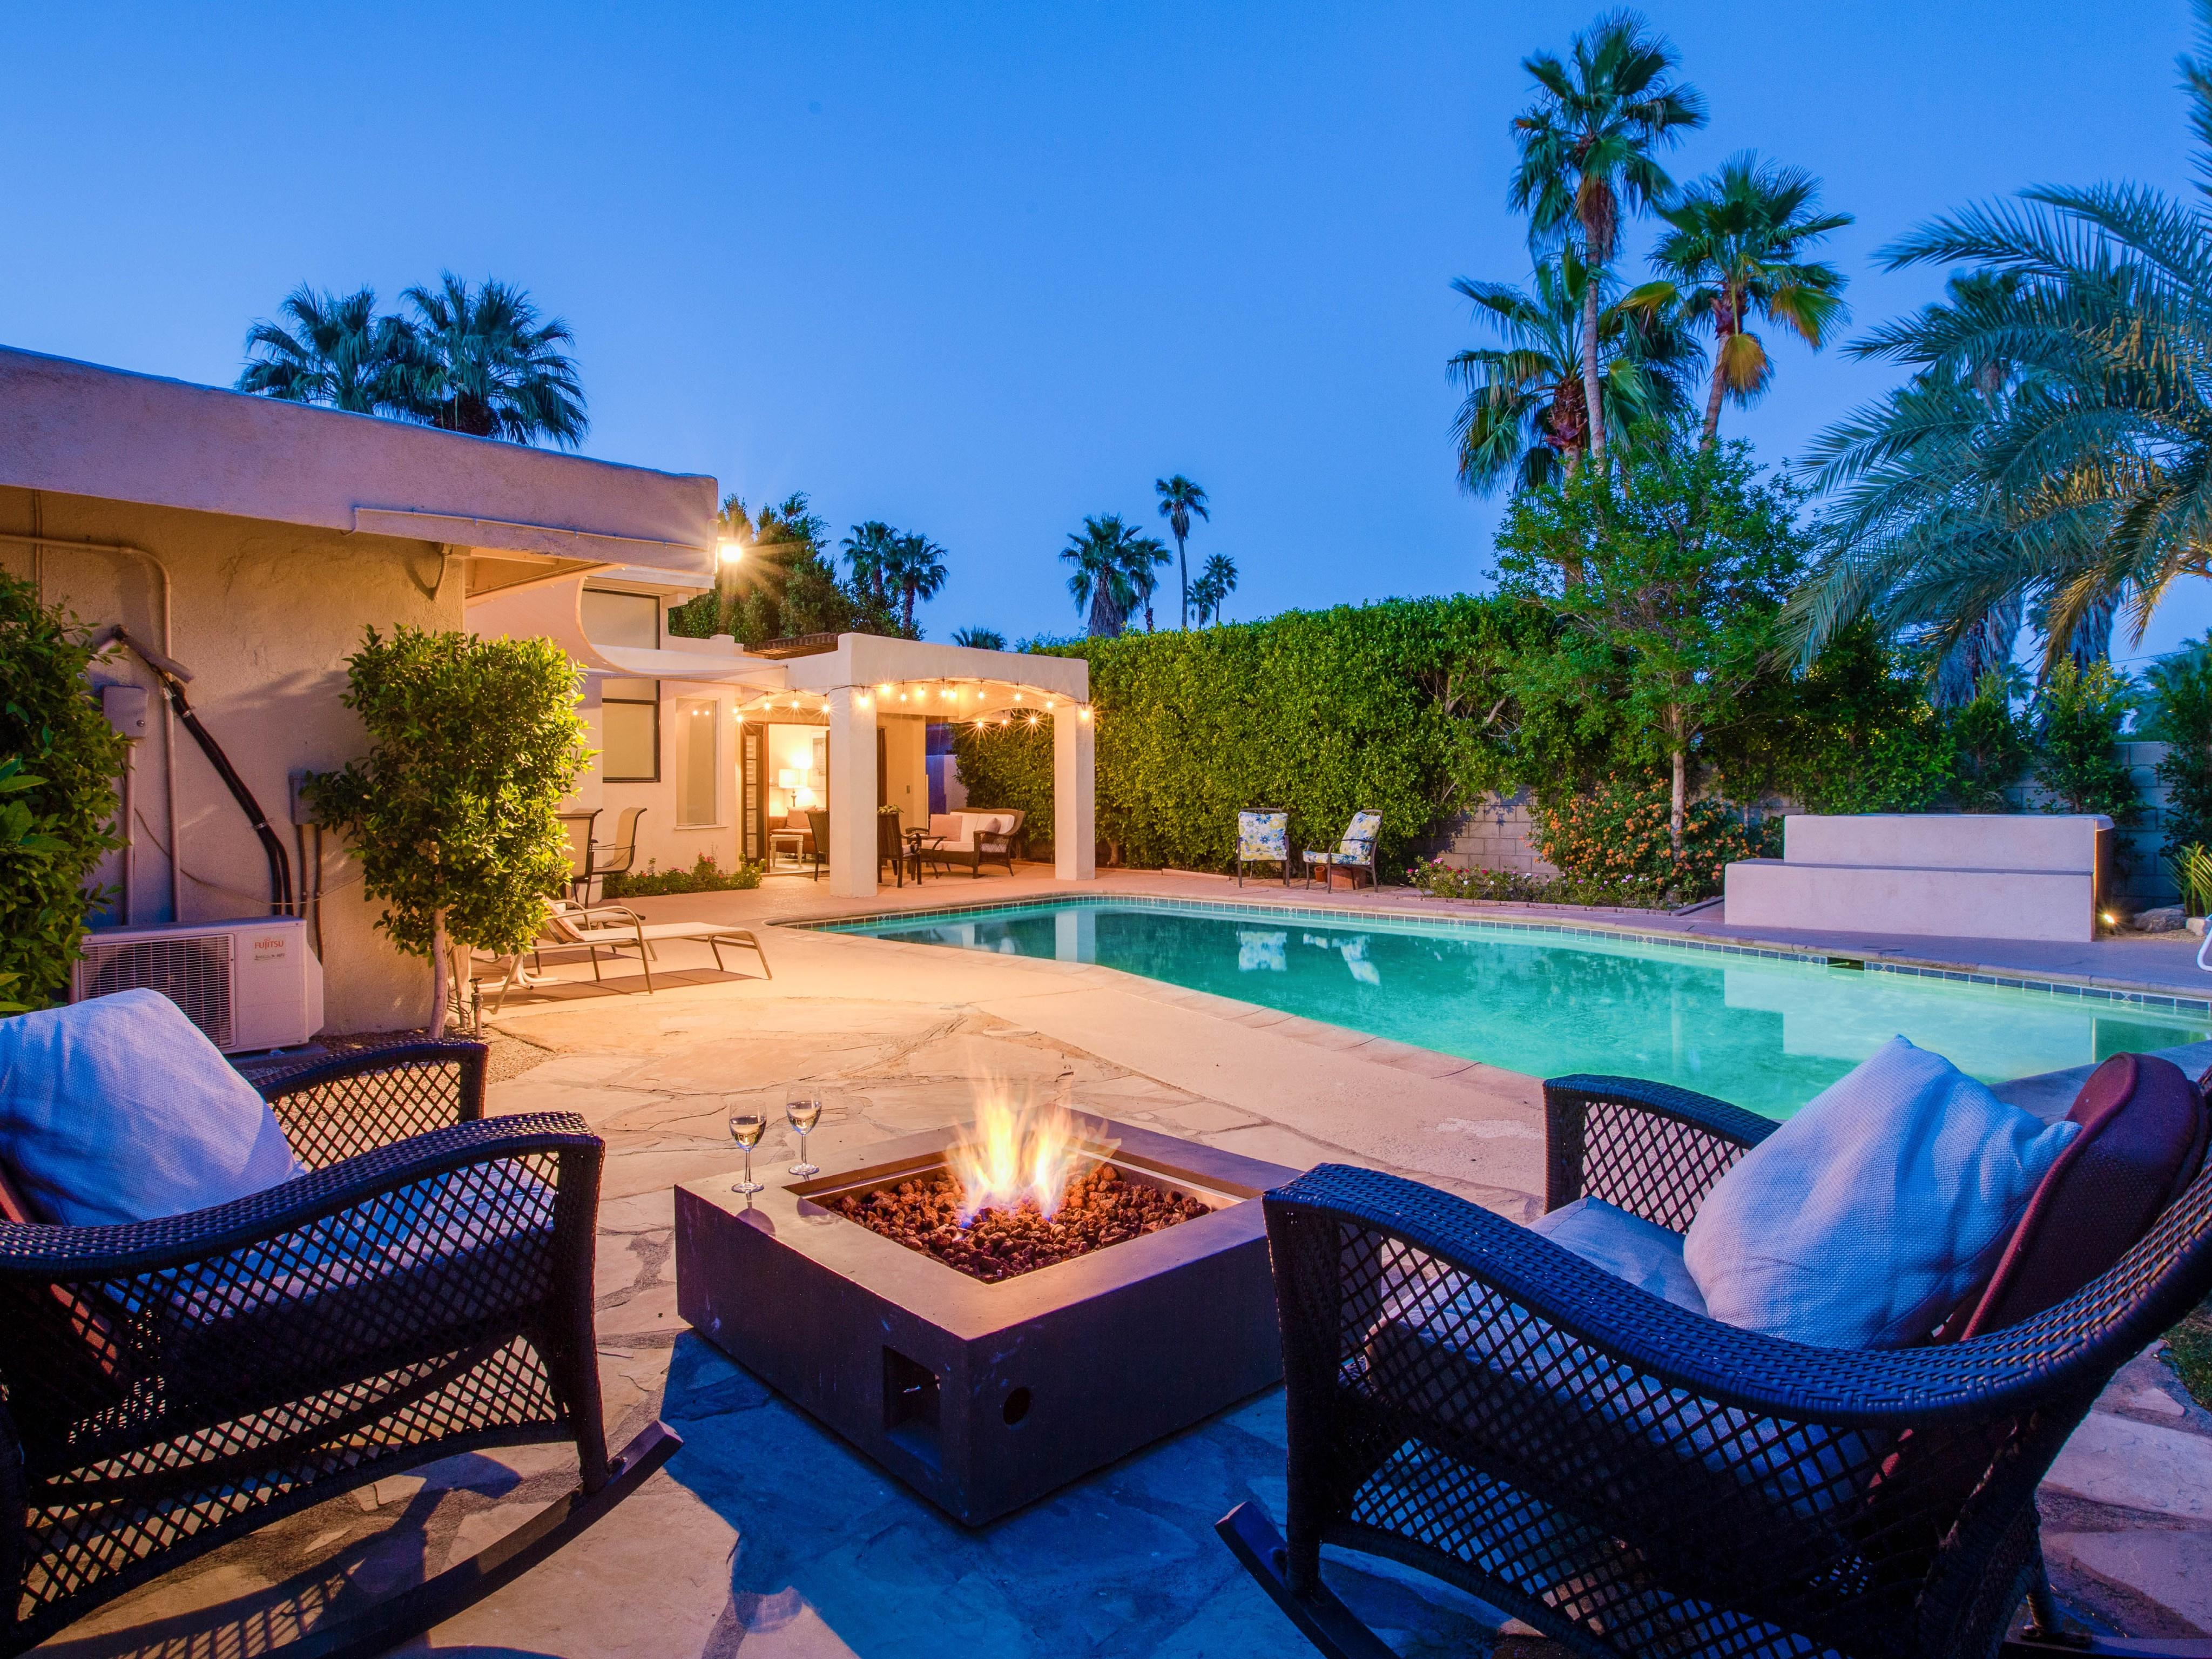 Property Image 2 - Celebrity Pedigree Home in Palm Springs with Pool/Spa